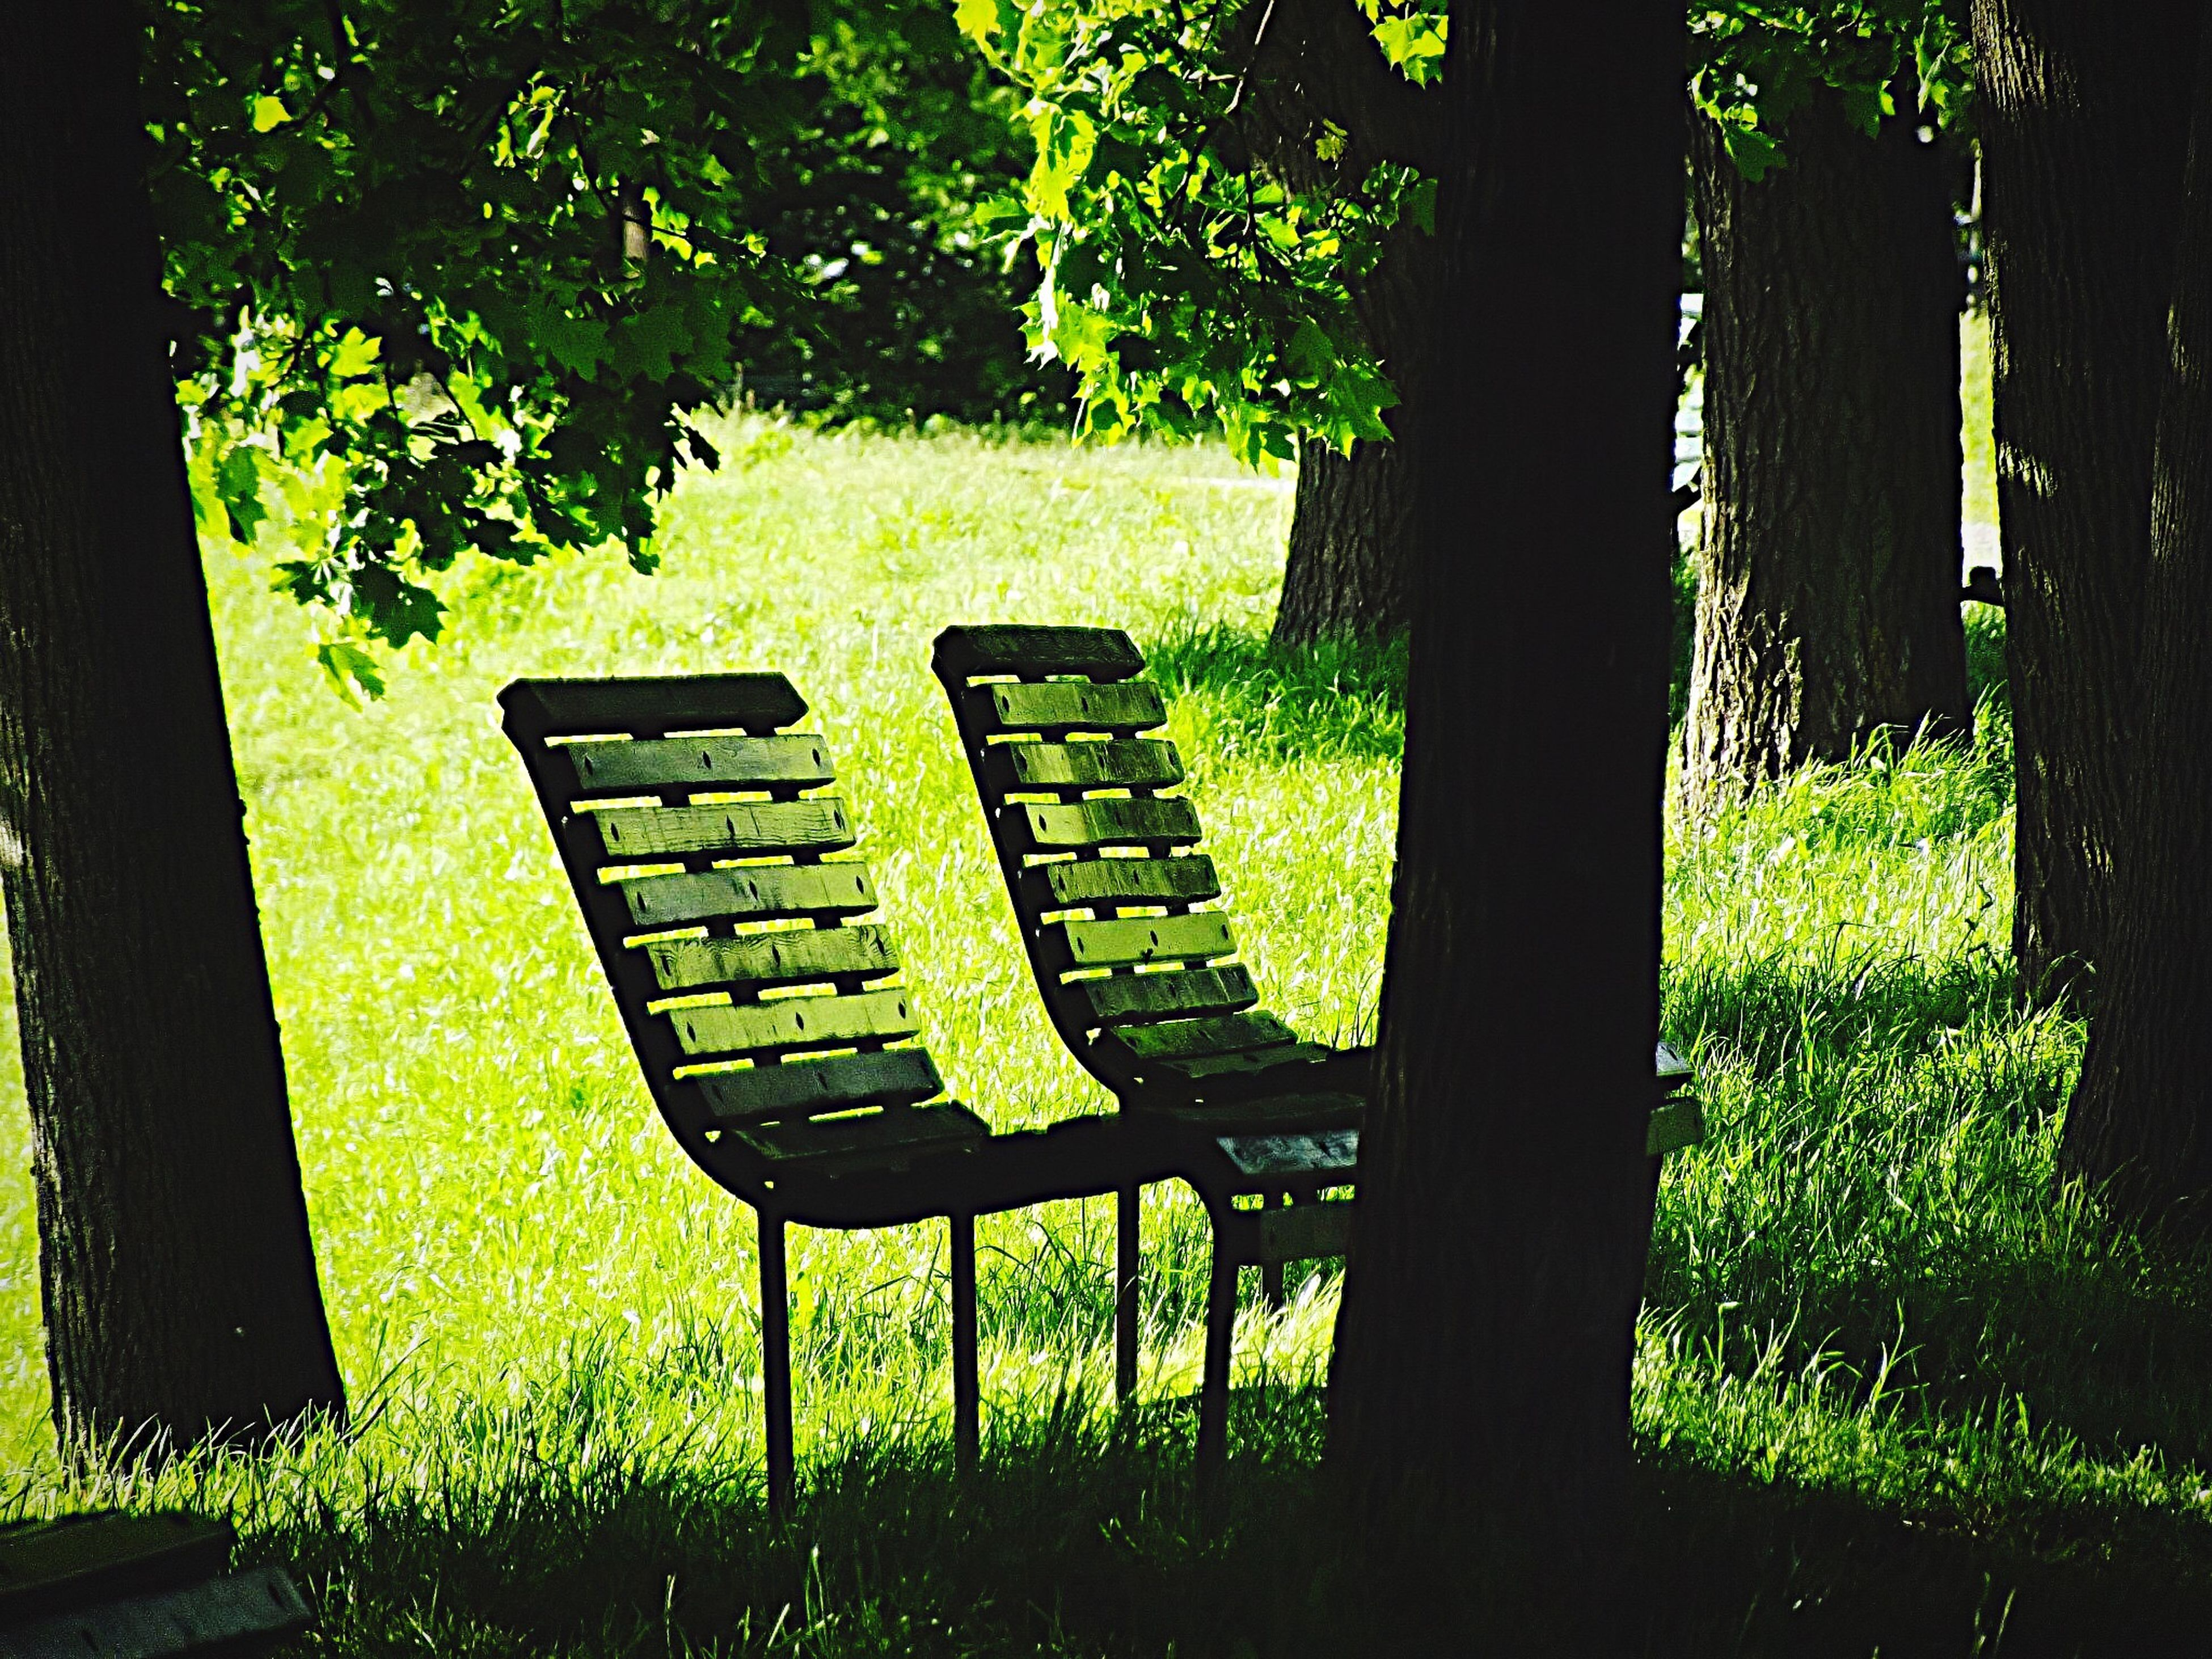 grass, tree, chair, empty, green color, bench, absence, park - man made space, park bench, growth, tranquility, seat, lawn, sunlight, shadow, nature, table, grassy, field, park